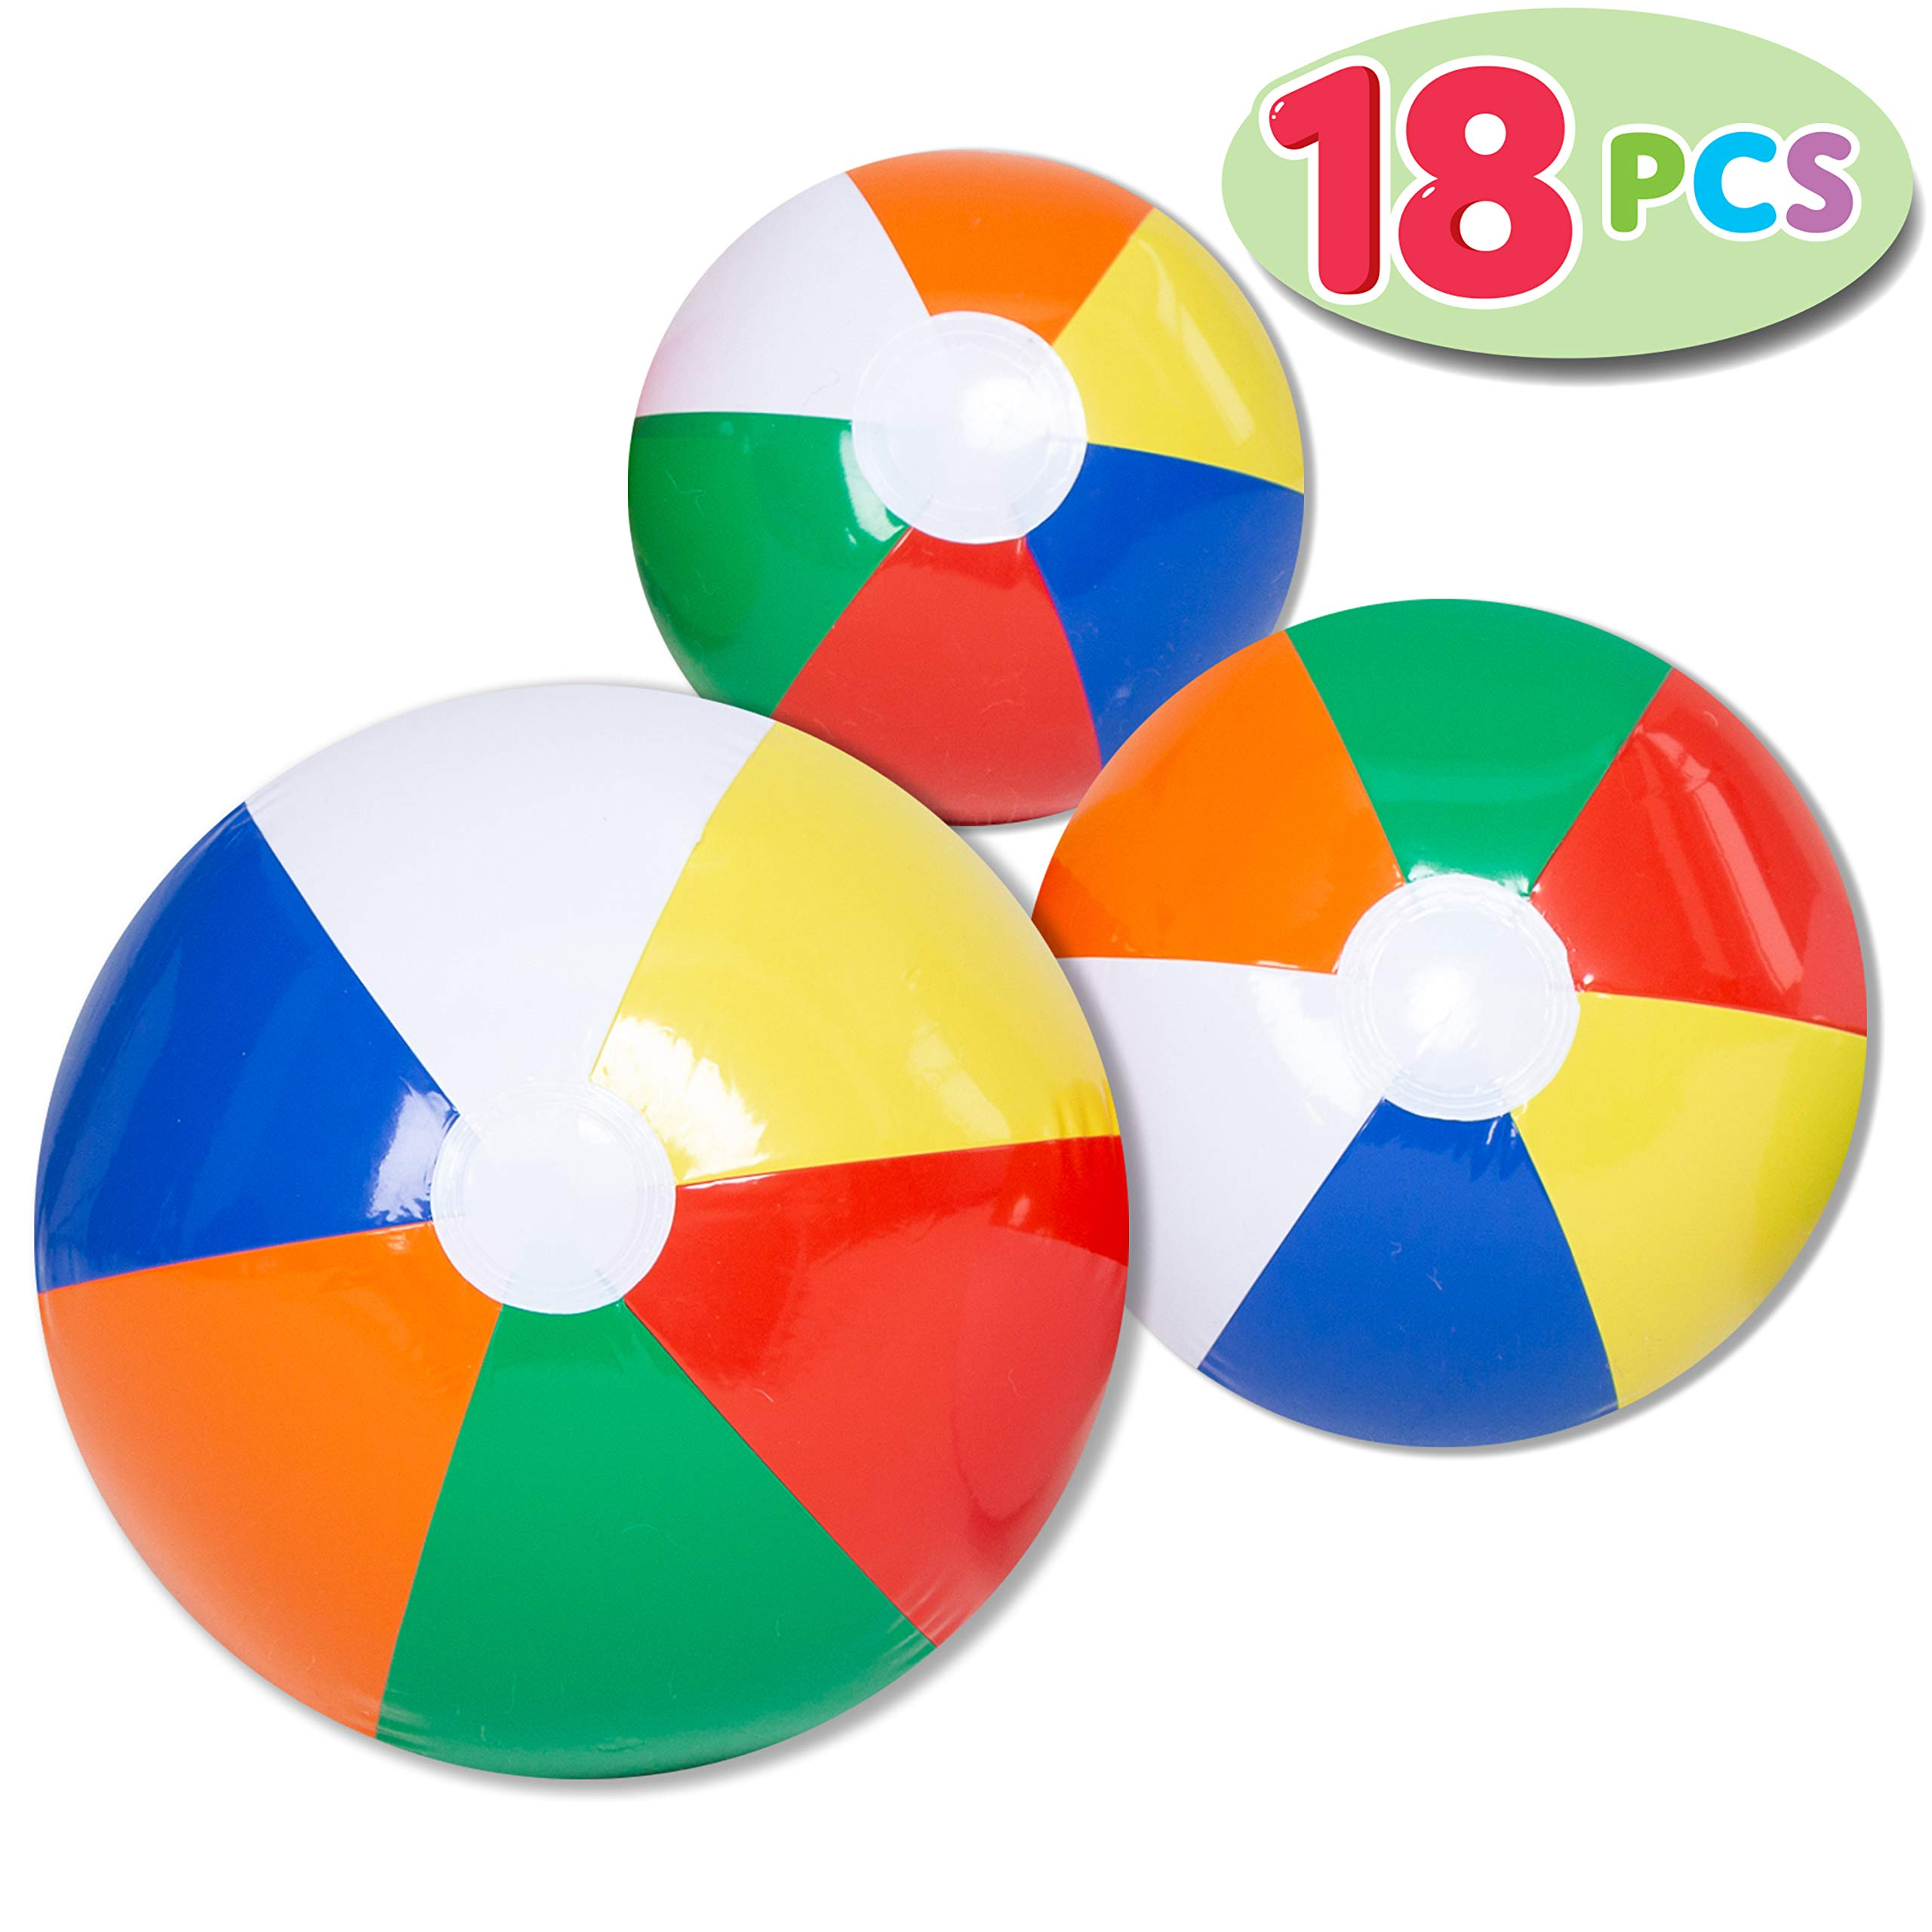 JOYIN Rainbow Beach Balls (18 Pack), Combo Set Include 18 Inflatable Beach Balls in 20'' (6), 16'' (6) and 12'' (6) by JOYIN